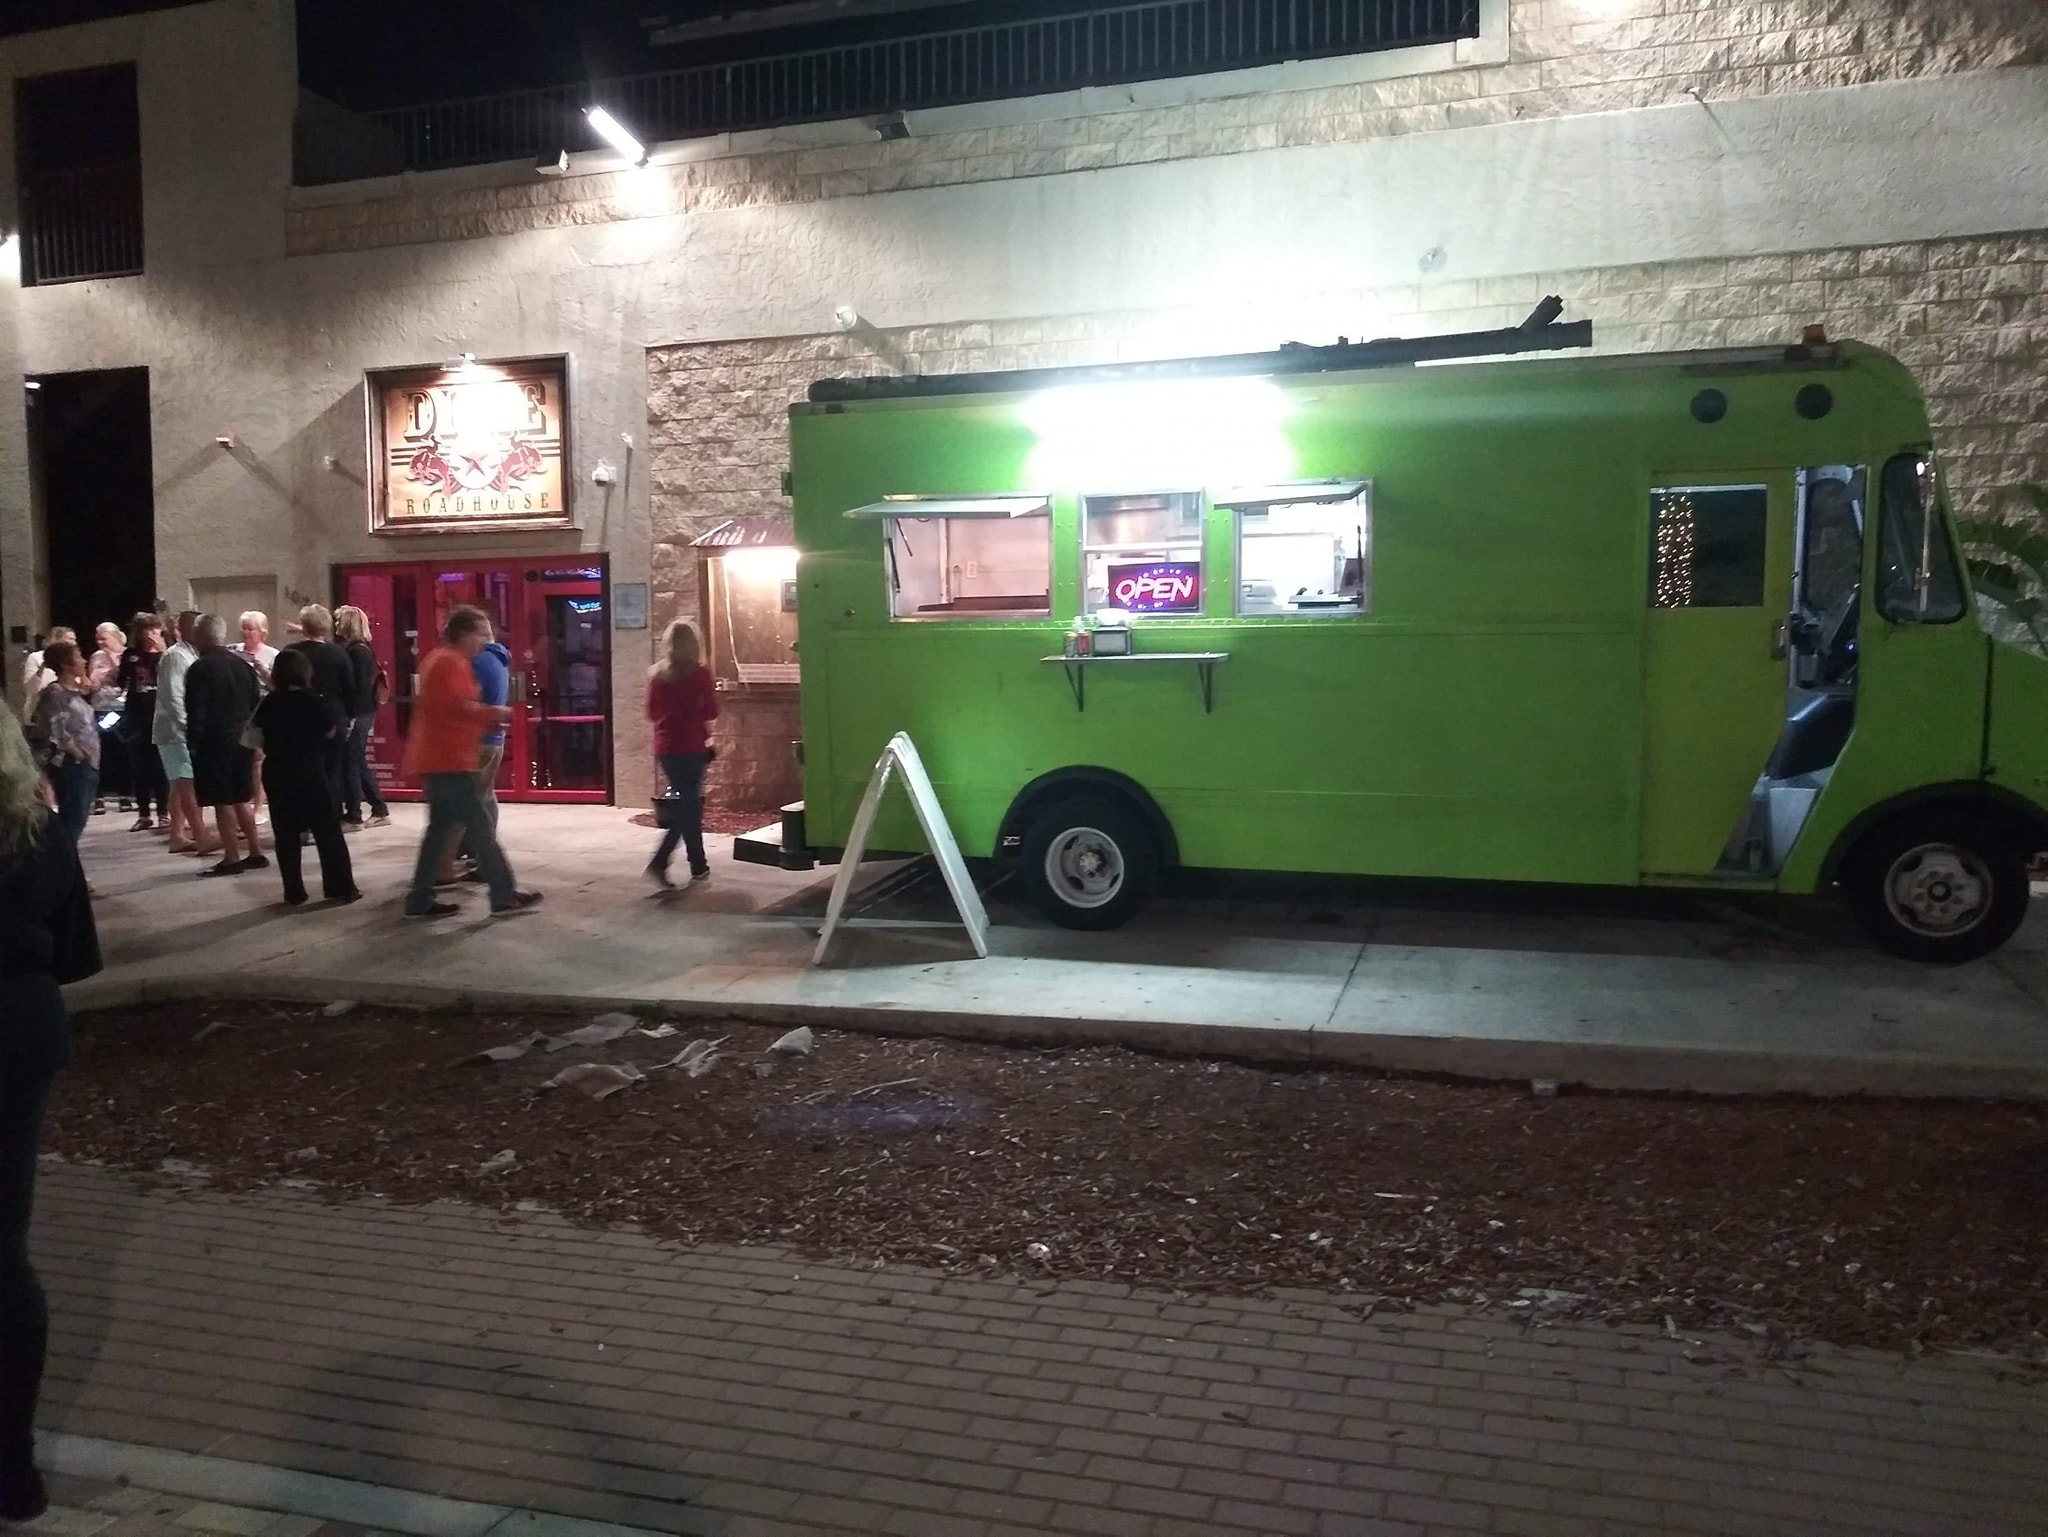 The Hunger Station Food Truck